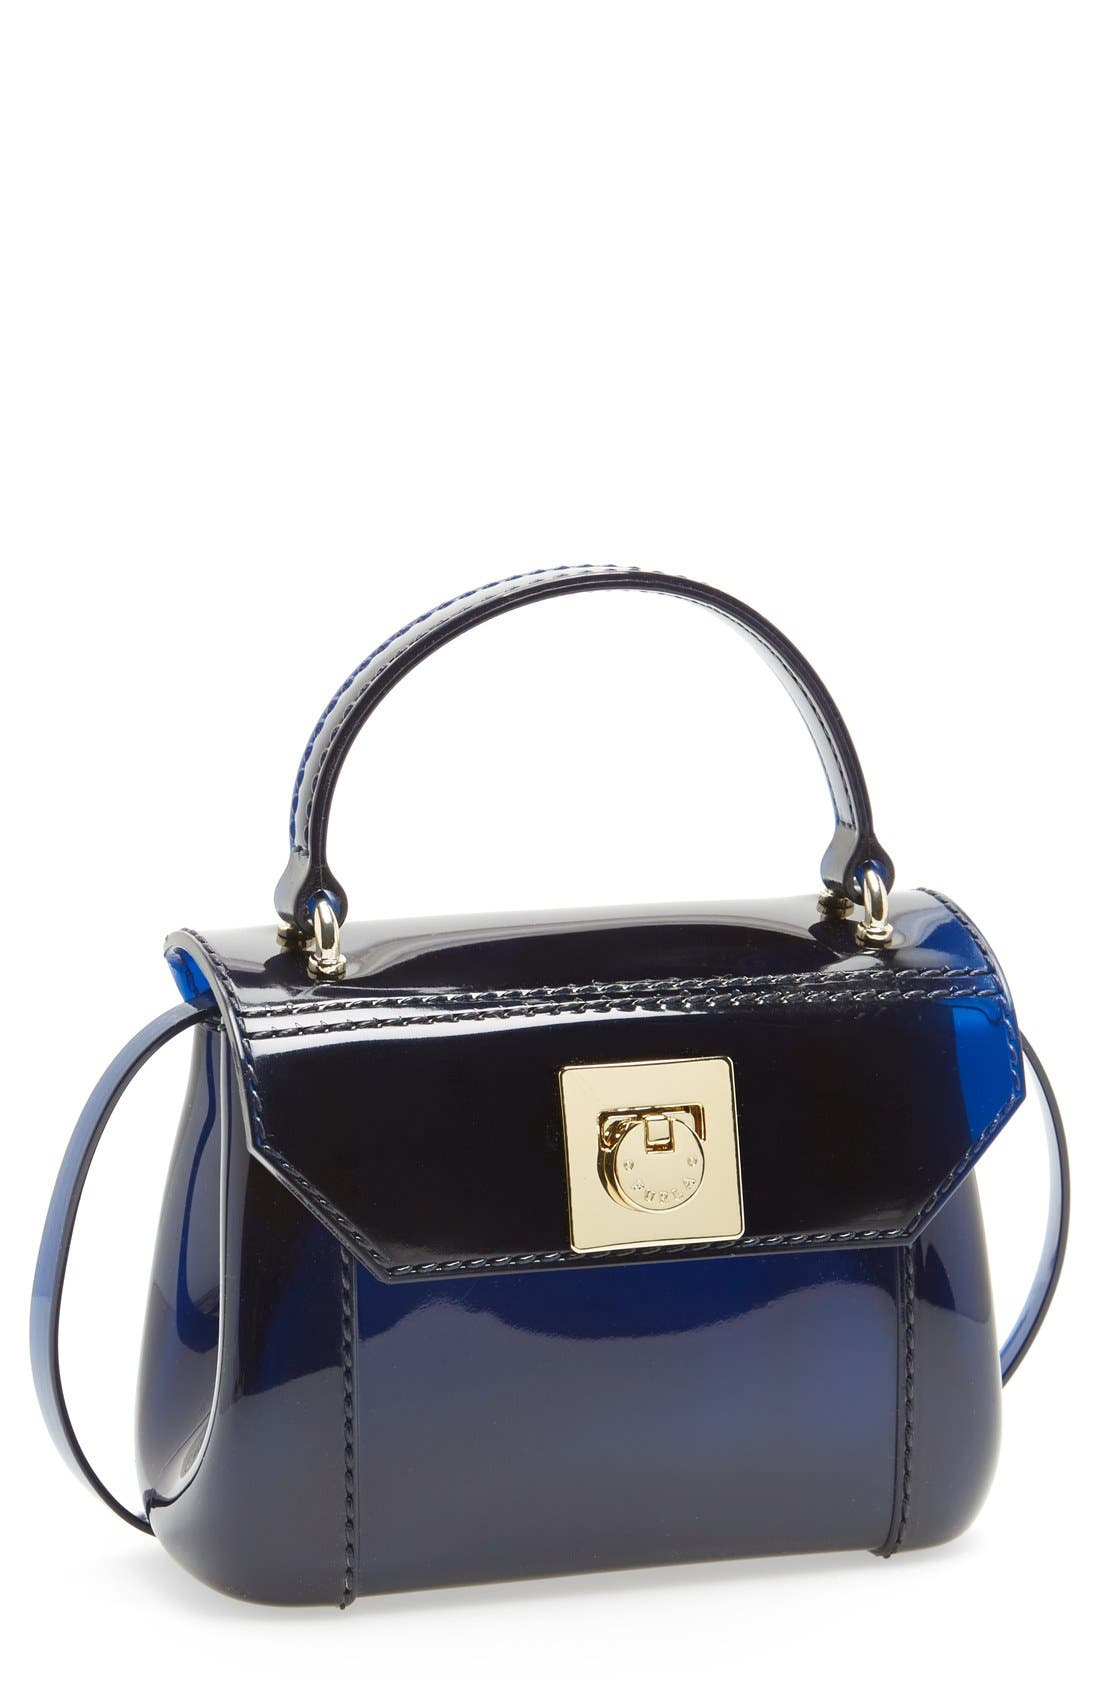 Alternate Image 1 Selected - Furla 'Candy - Mini' Top Handle Crossbody Bag